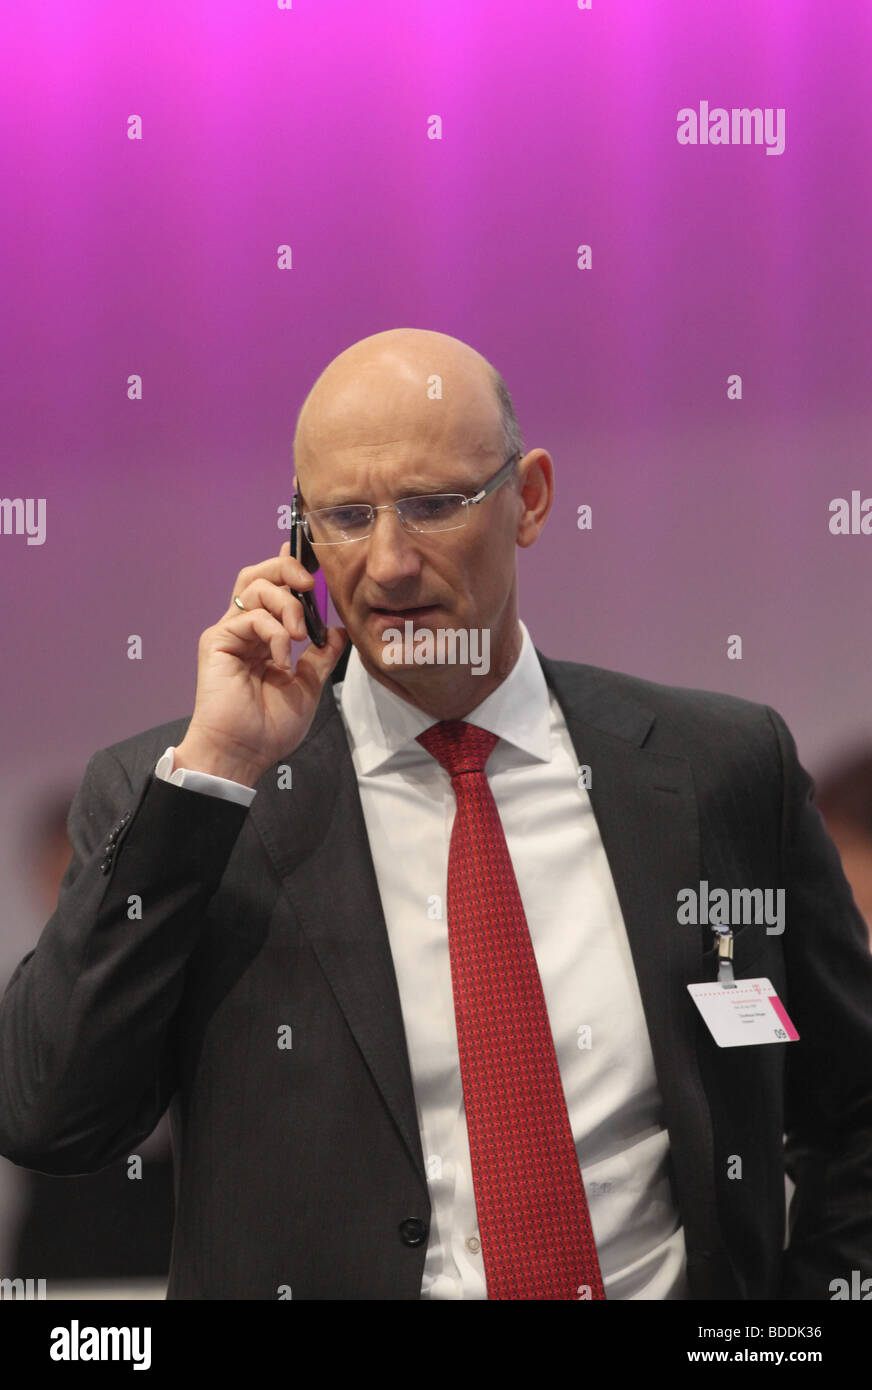 Deutsche Telekom board member Timotheus Hoettges talking on a mobile phone, annual shareholders meeting, Cologne. - Stock Image